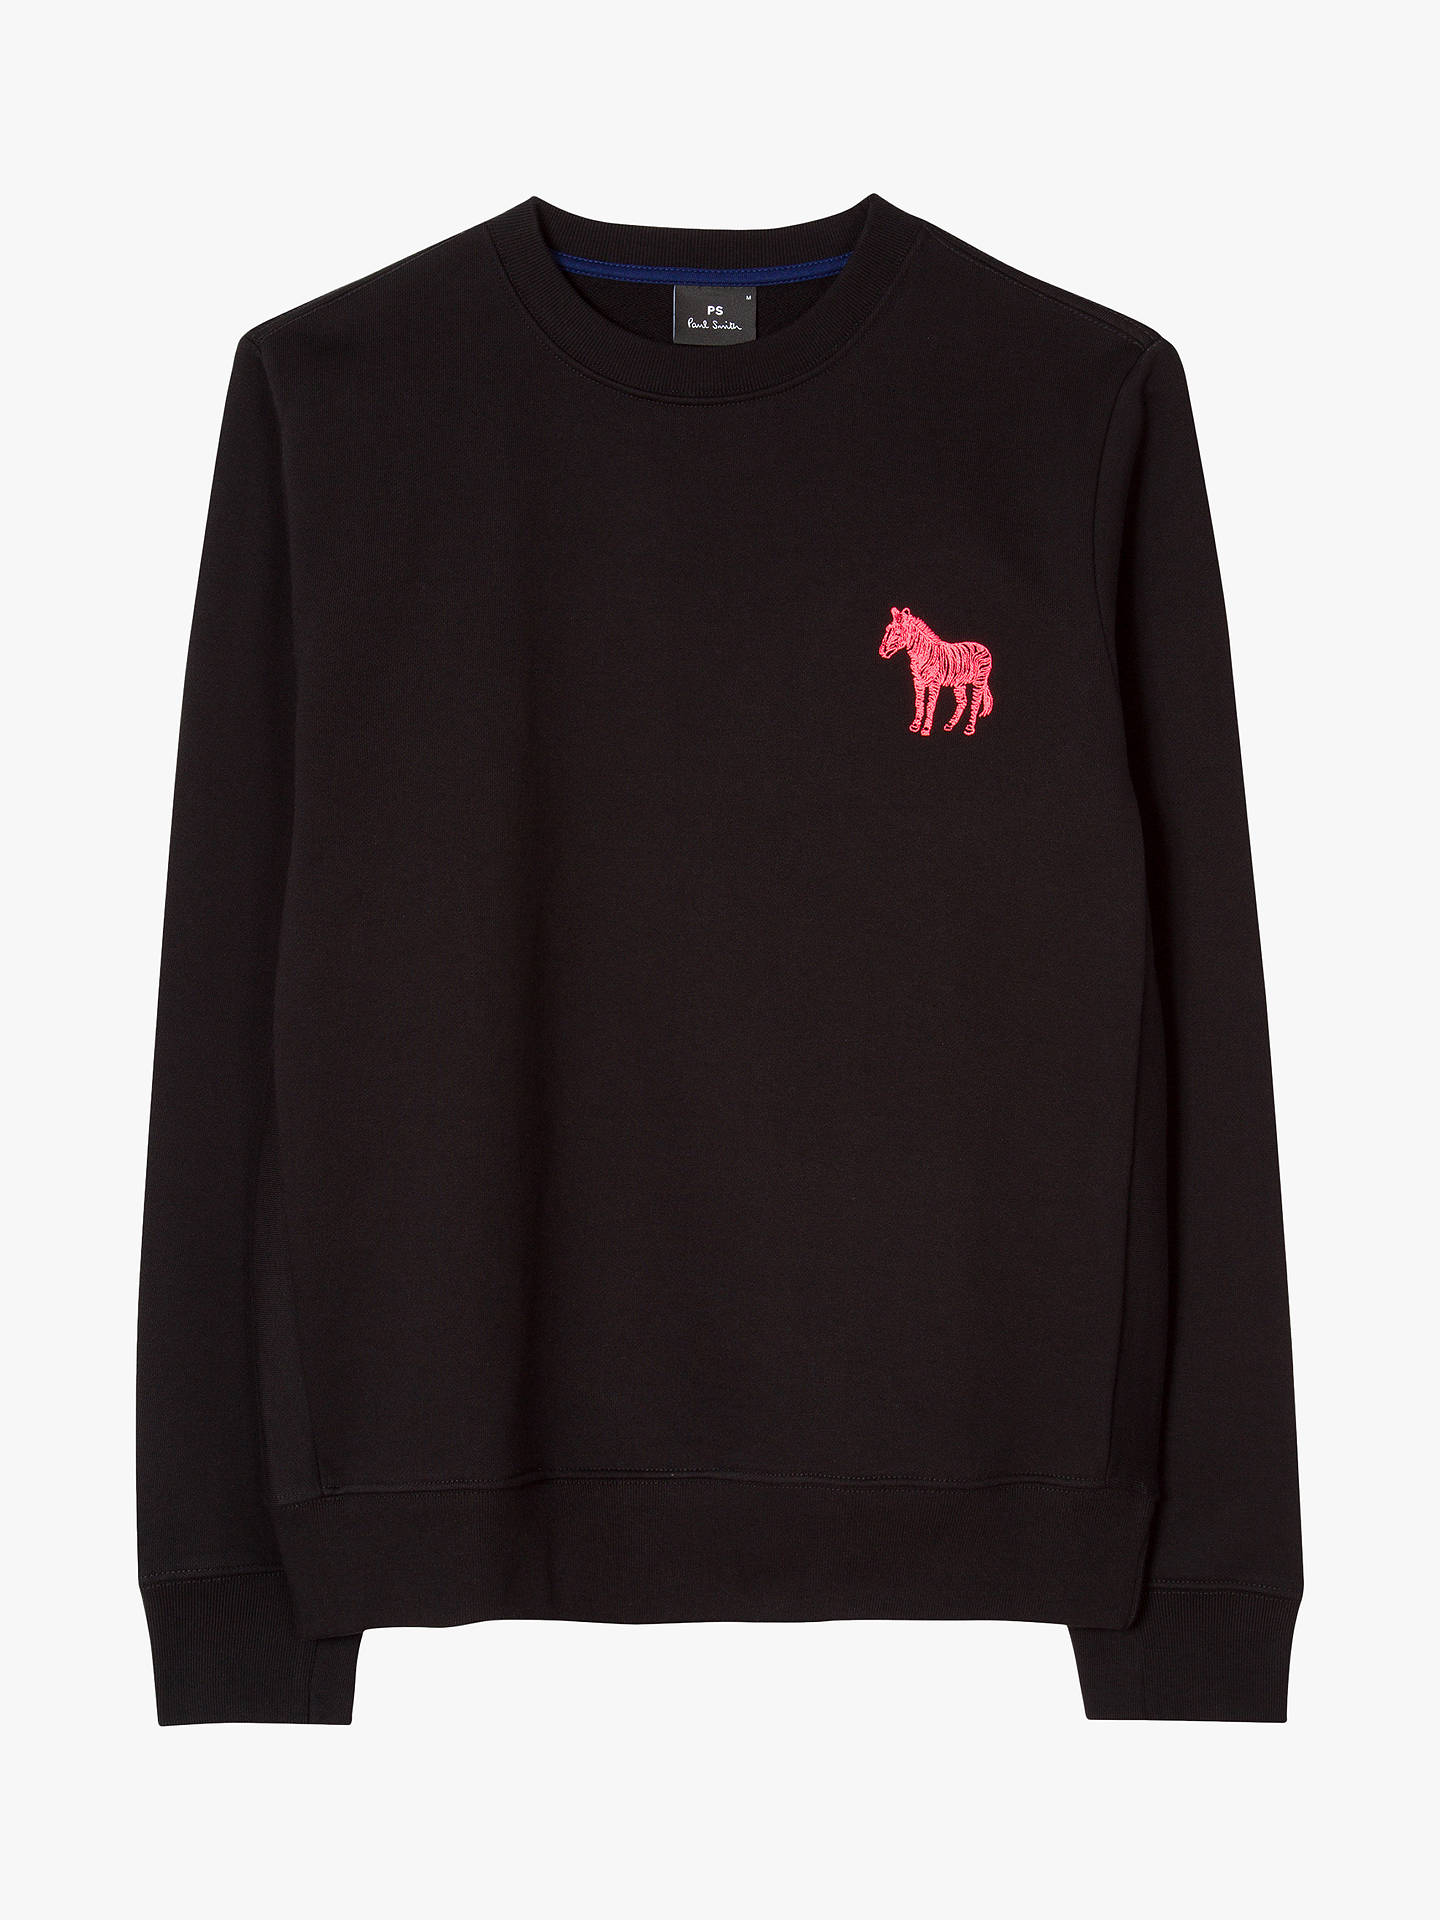 BuyPS Paul Smith Zebra Embroidered Sweatshirt, Black, XL Online at johnlewis.com